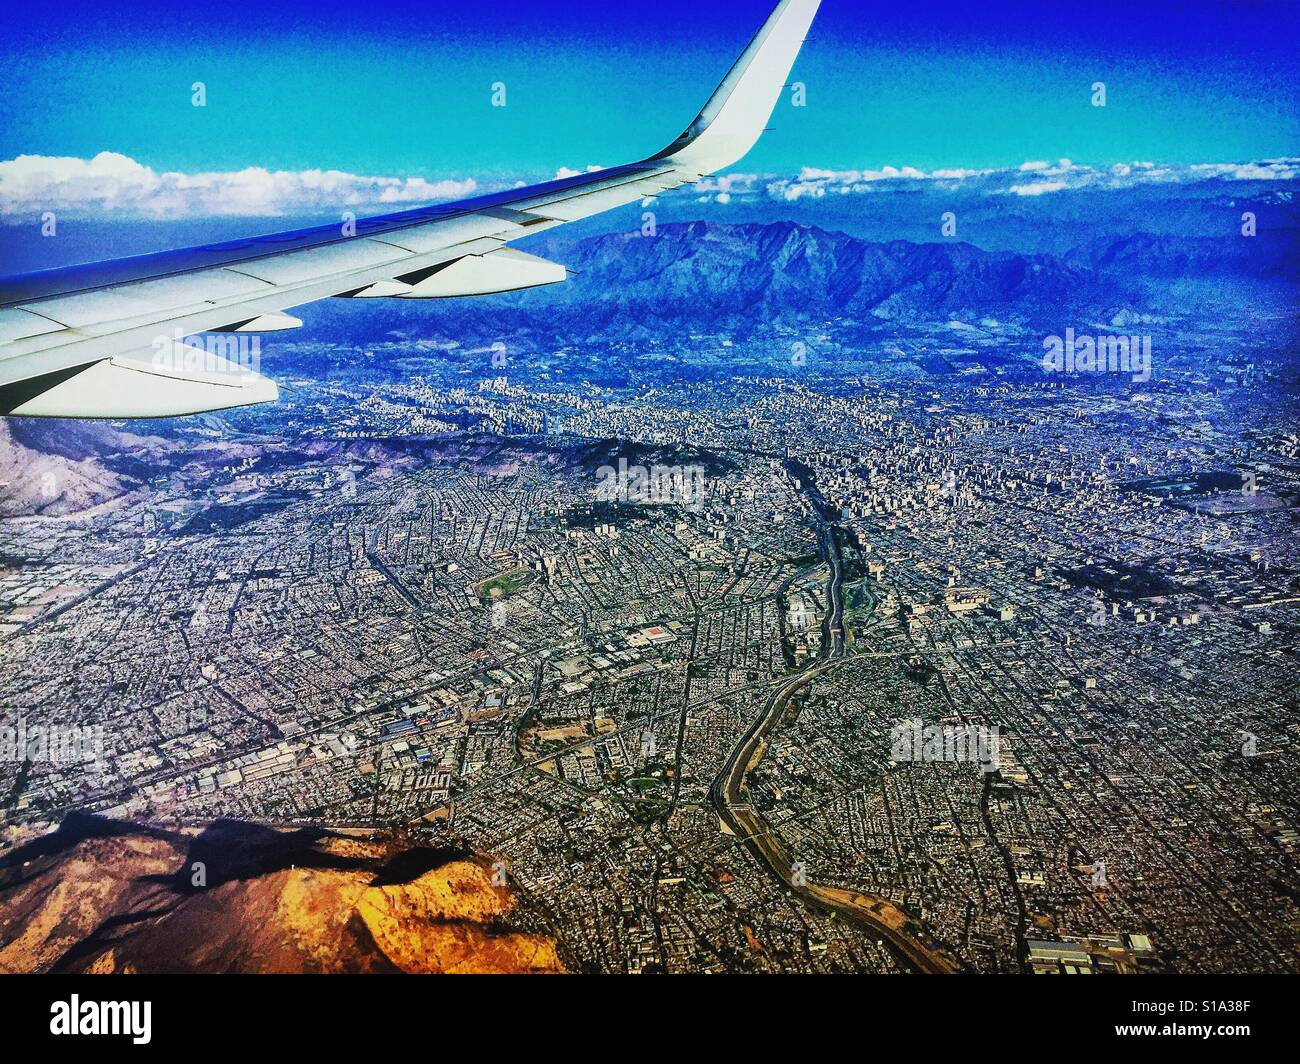 Flying over Santiago, Chile, on a clear day with the Andes in the background. Aircraft wing in the foreground. - Stock Image